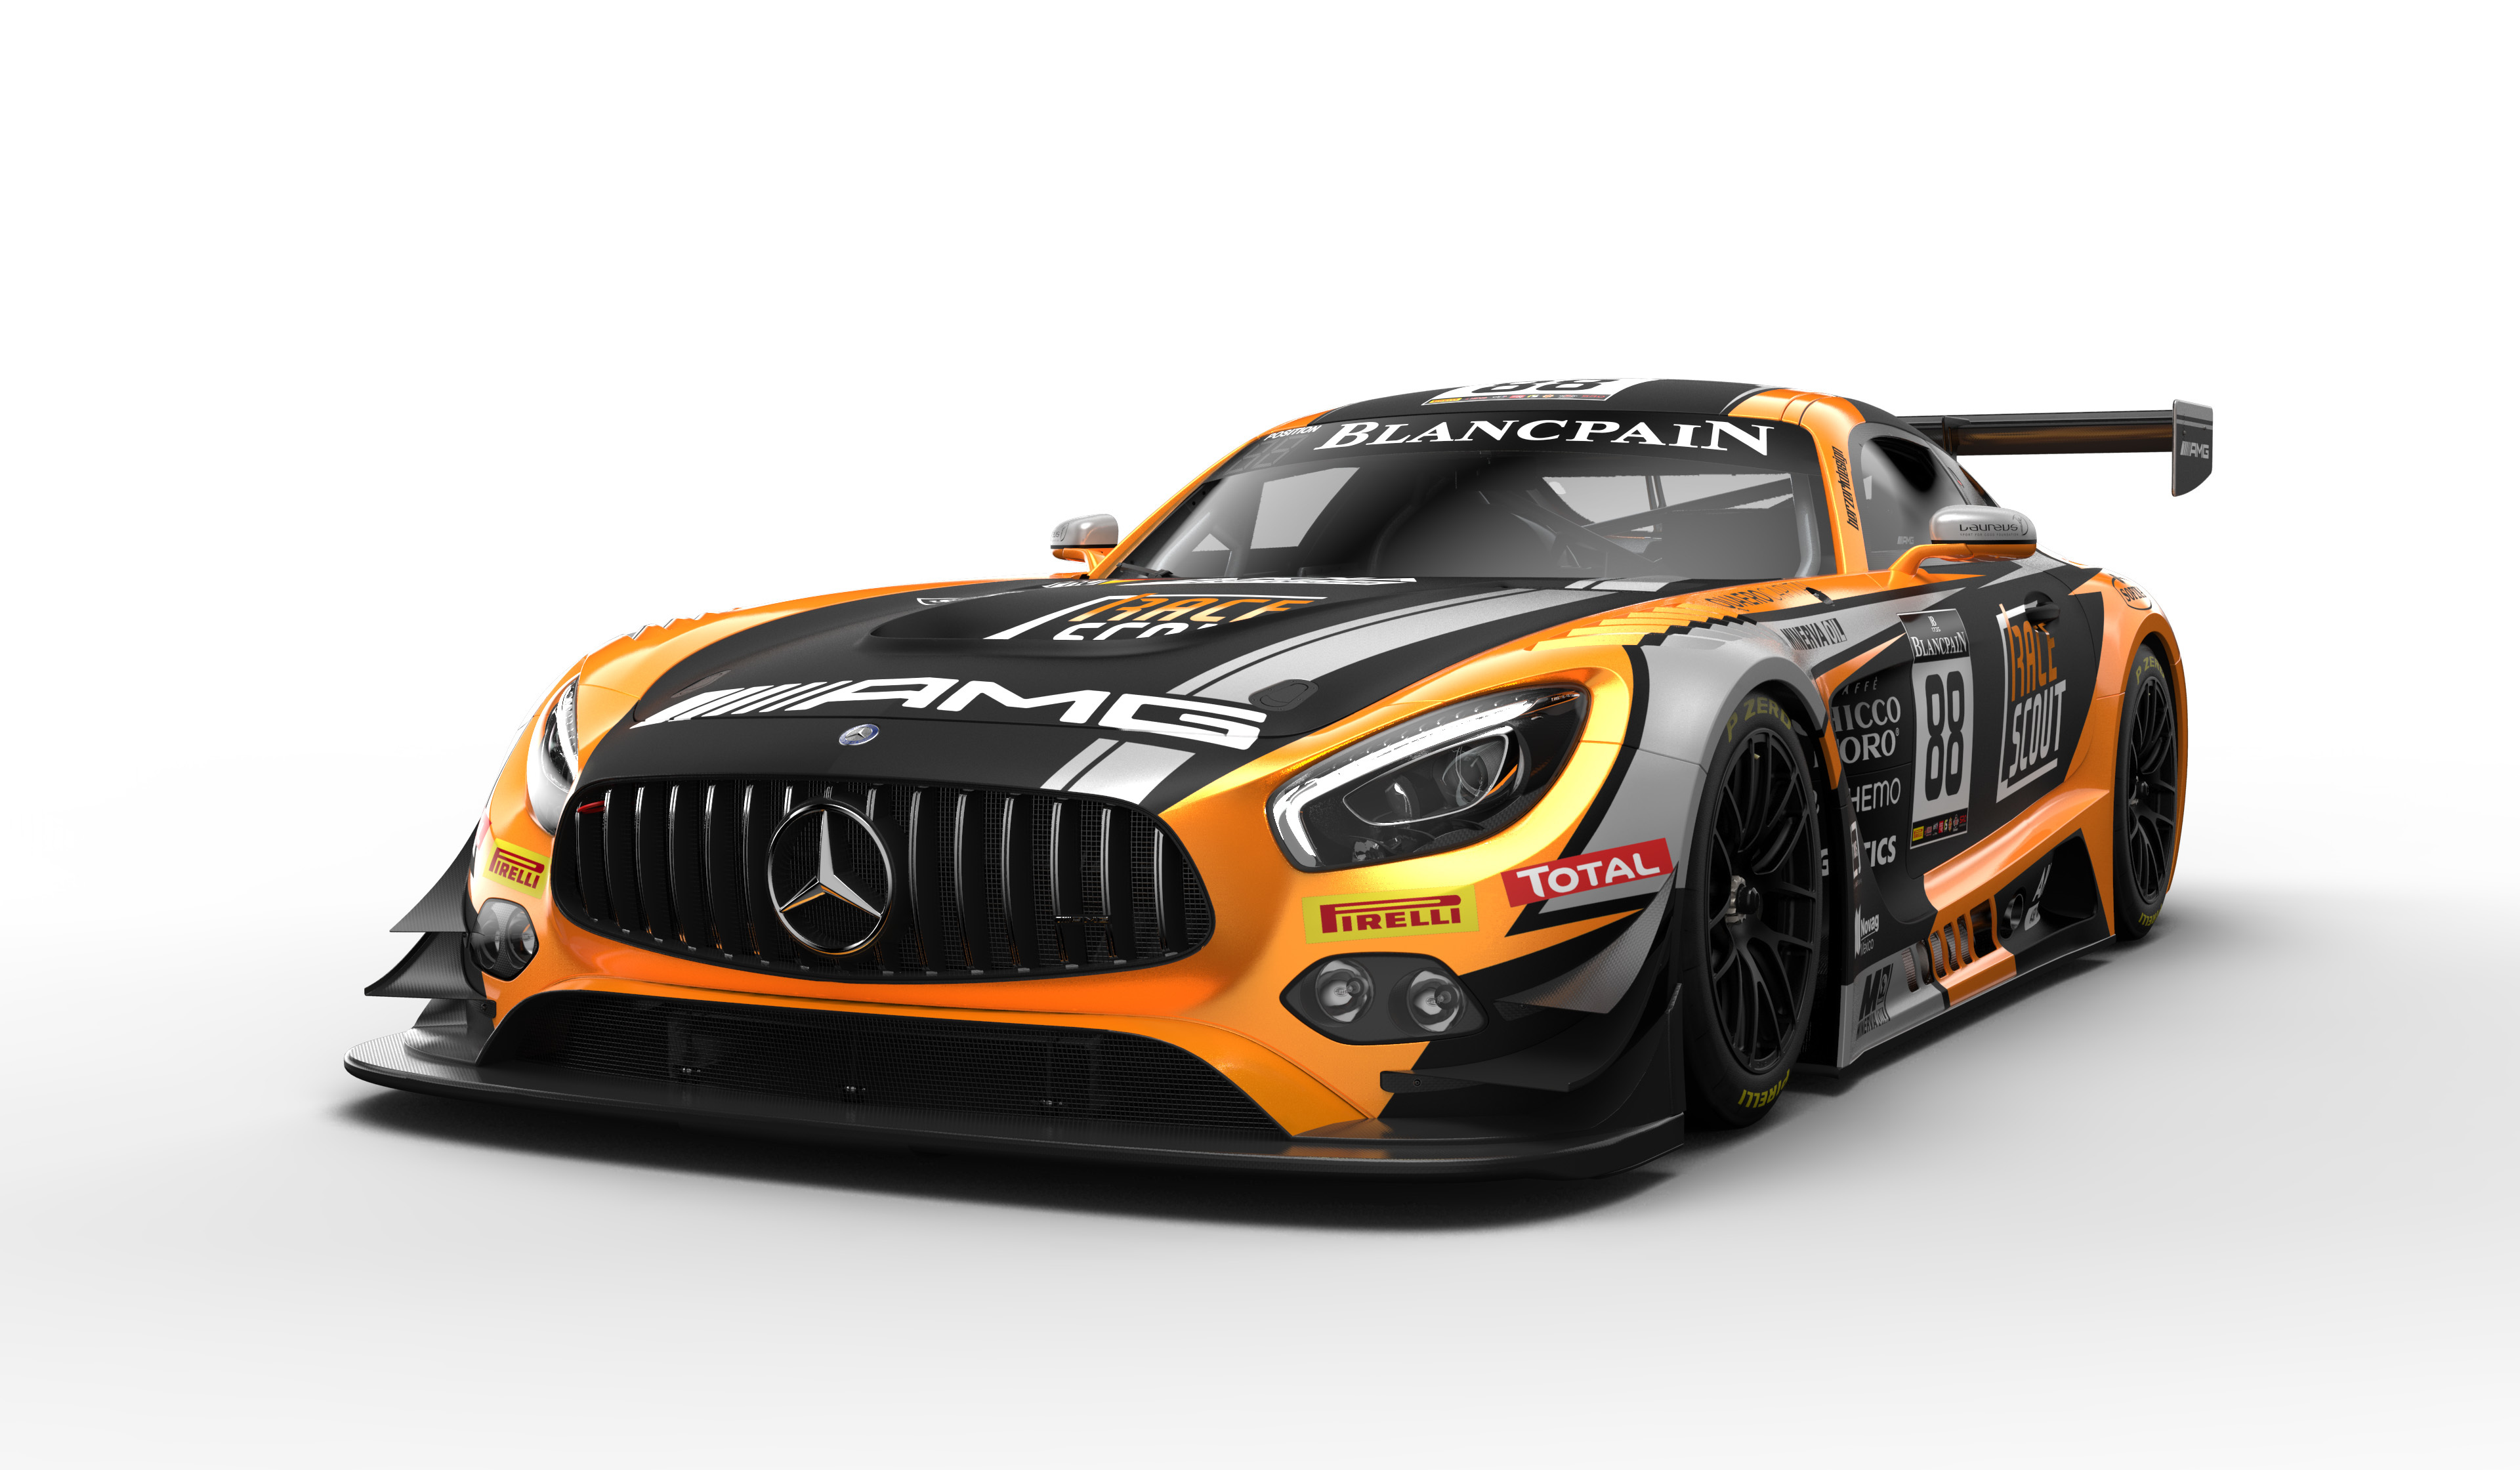 otal 24 Hours of Spa: Mercedes-AMG with a record line-up for Spa-Francorchamps 24-hour race